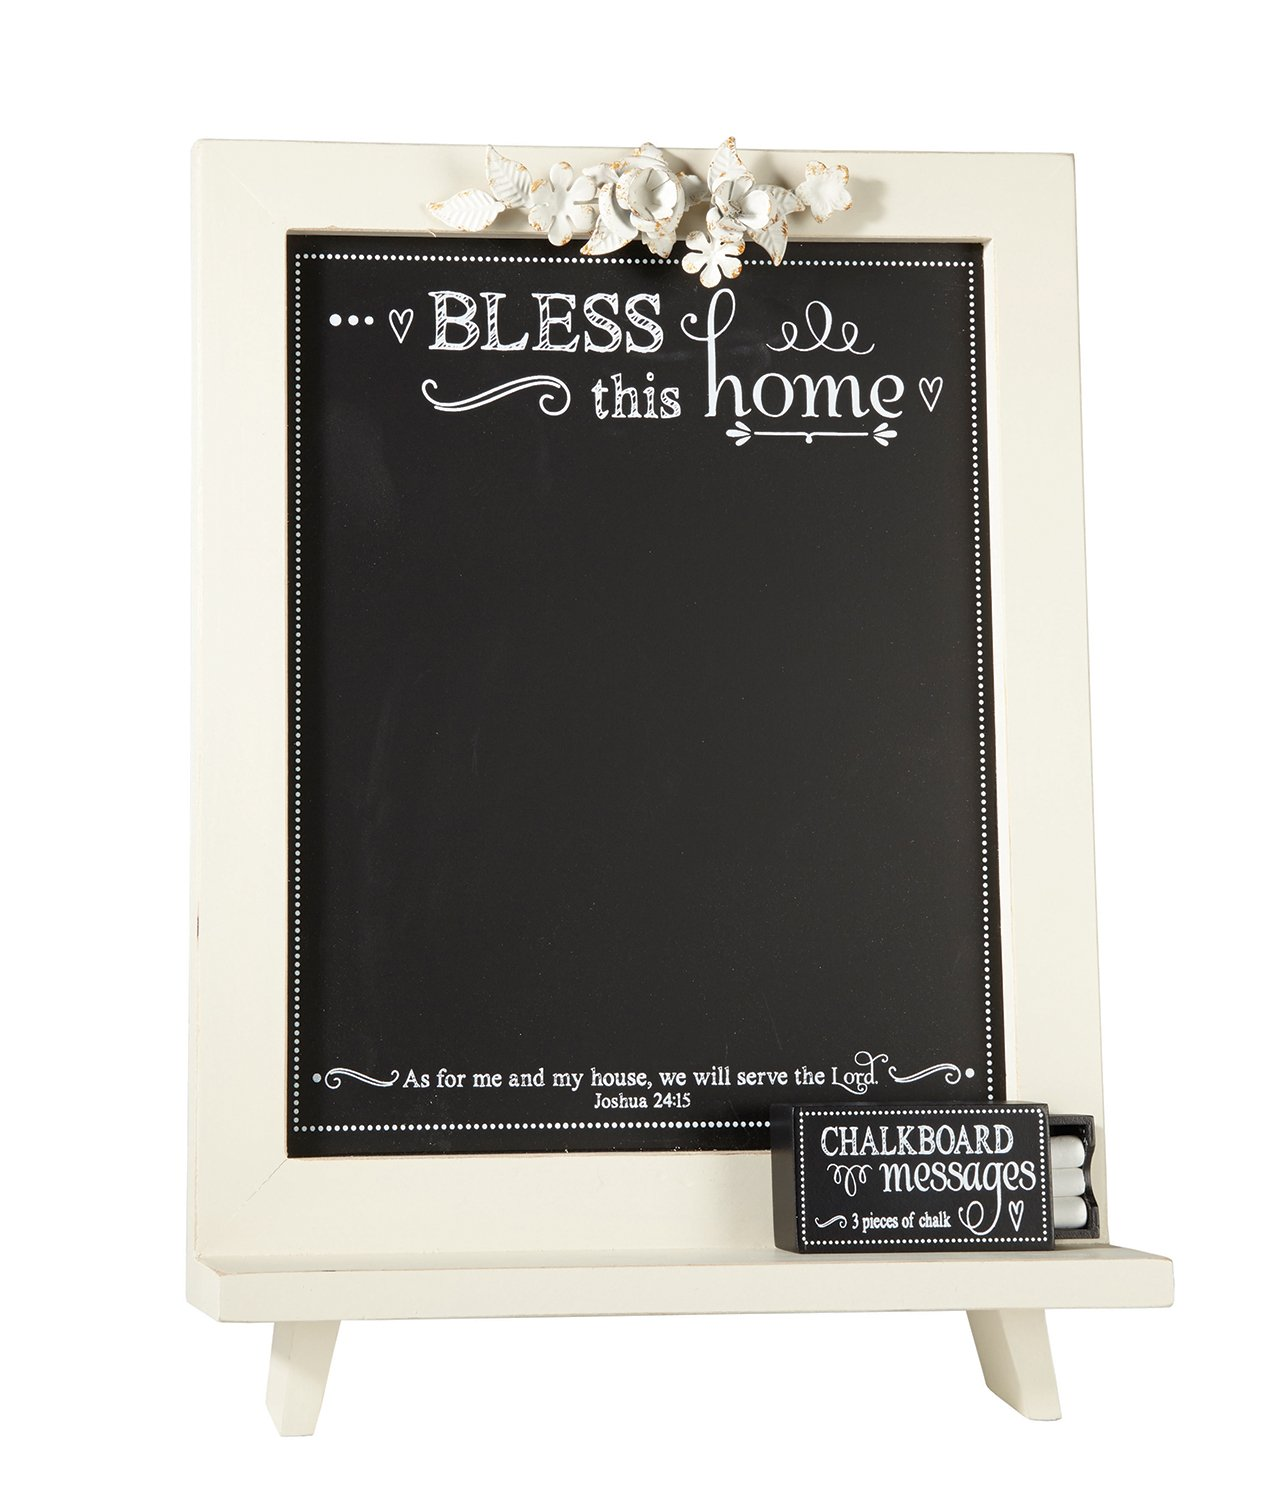 Faithworks Chalkboard Messages Wall Art/Tabletop Plaque, 12 x 18'', Bless This Home